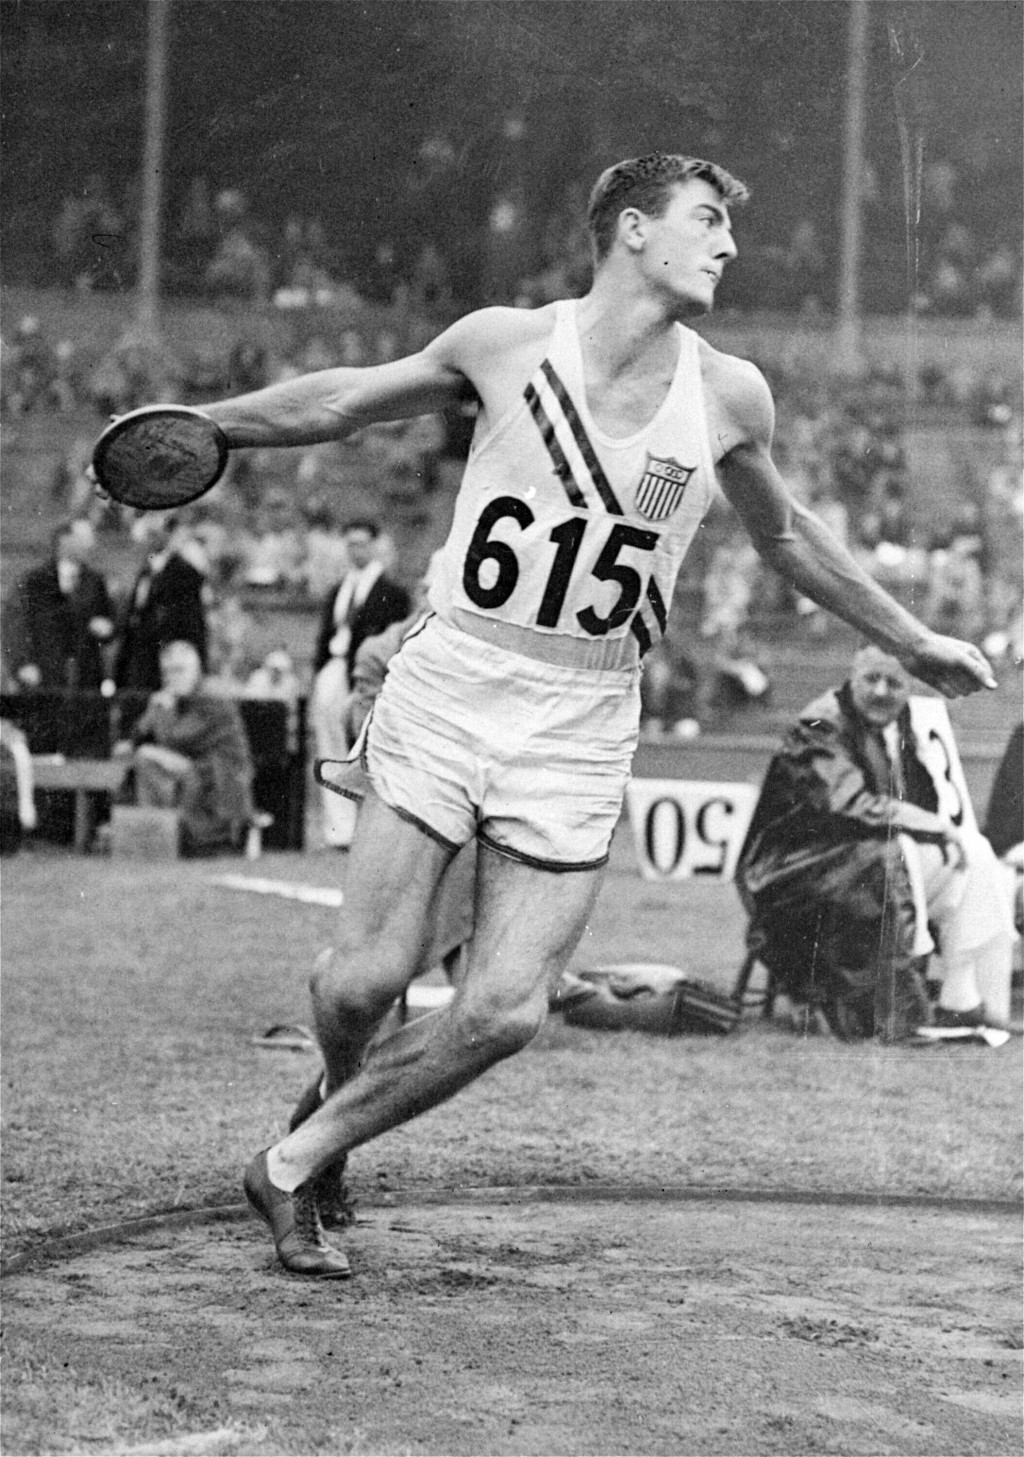 FILE - In this Aug. 6, 1948, file photo, Bob Mathias, of the United States, throws the discus during the decathlon competition at Wembley Stadium at t...